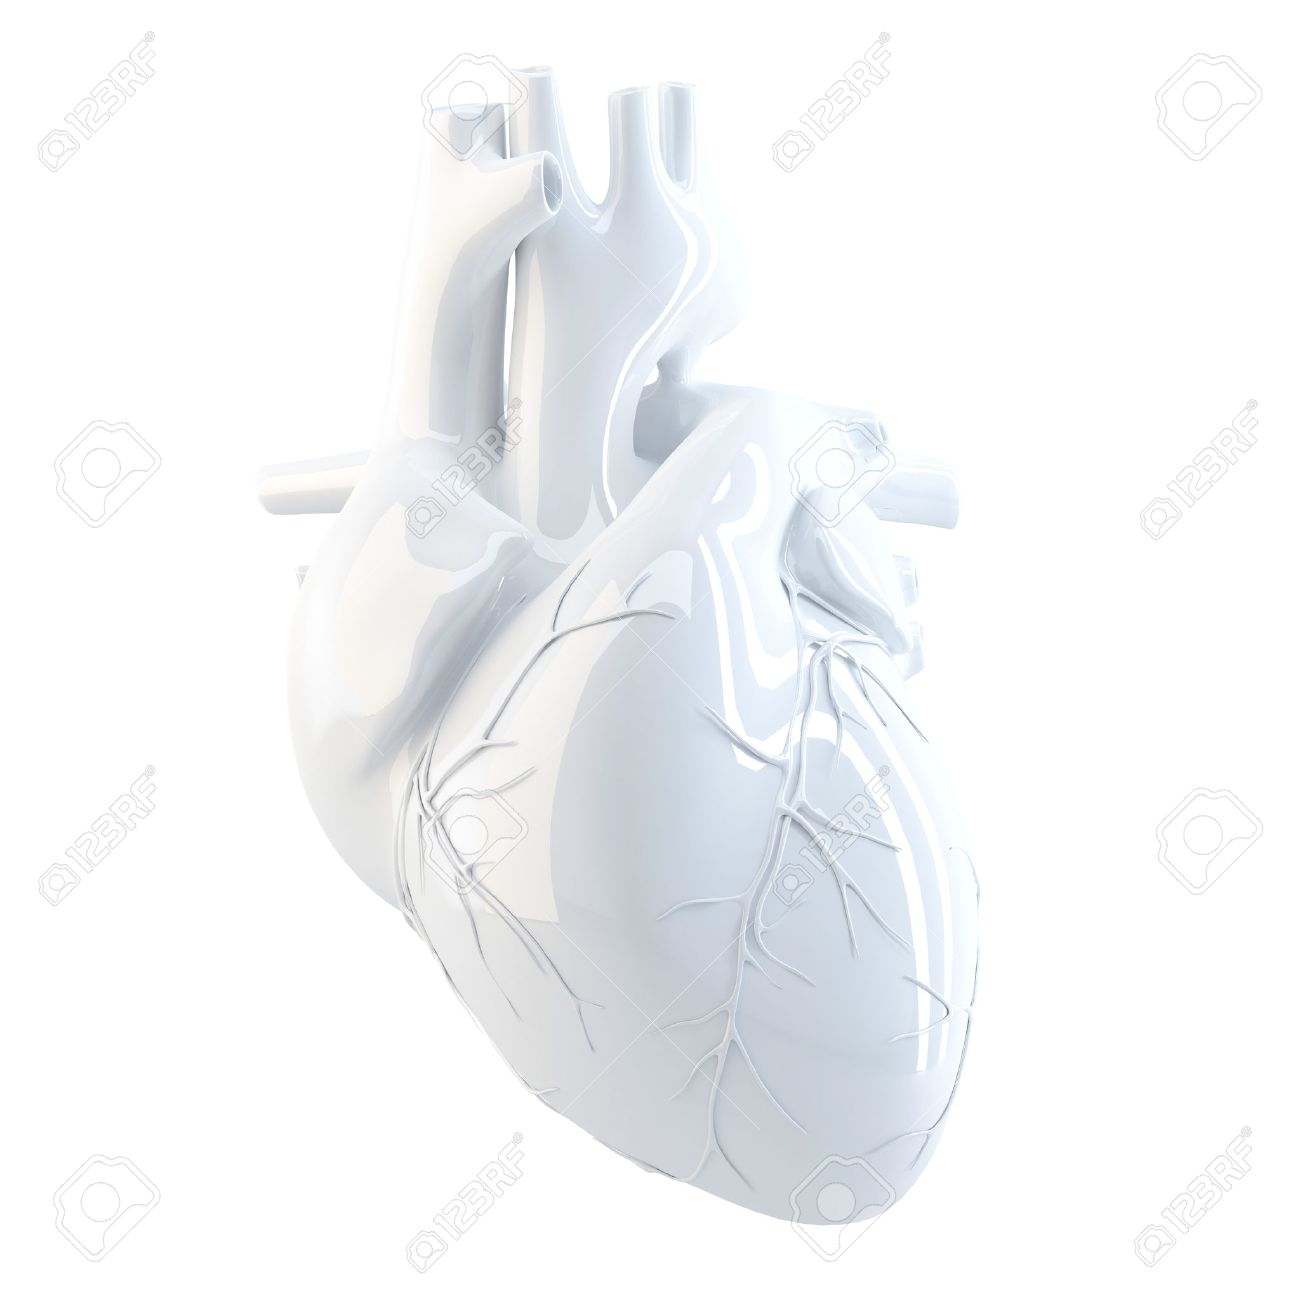 Human Heart. 3d render. Isolated over white, contains clipping path. Standard-Bild - 33234201